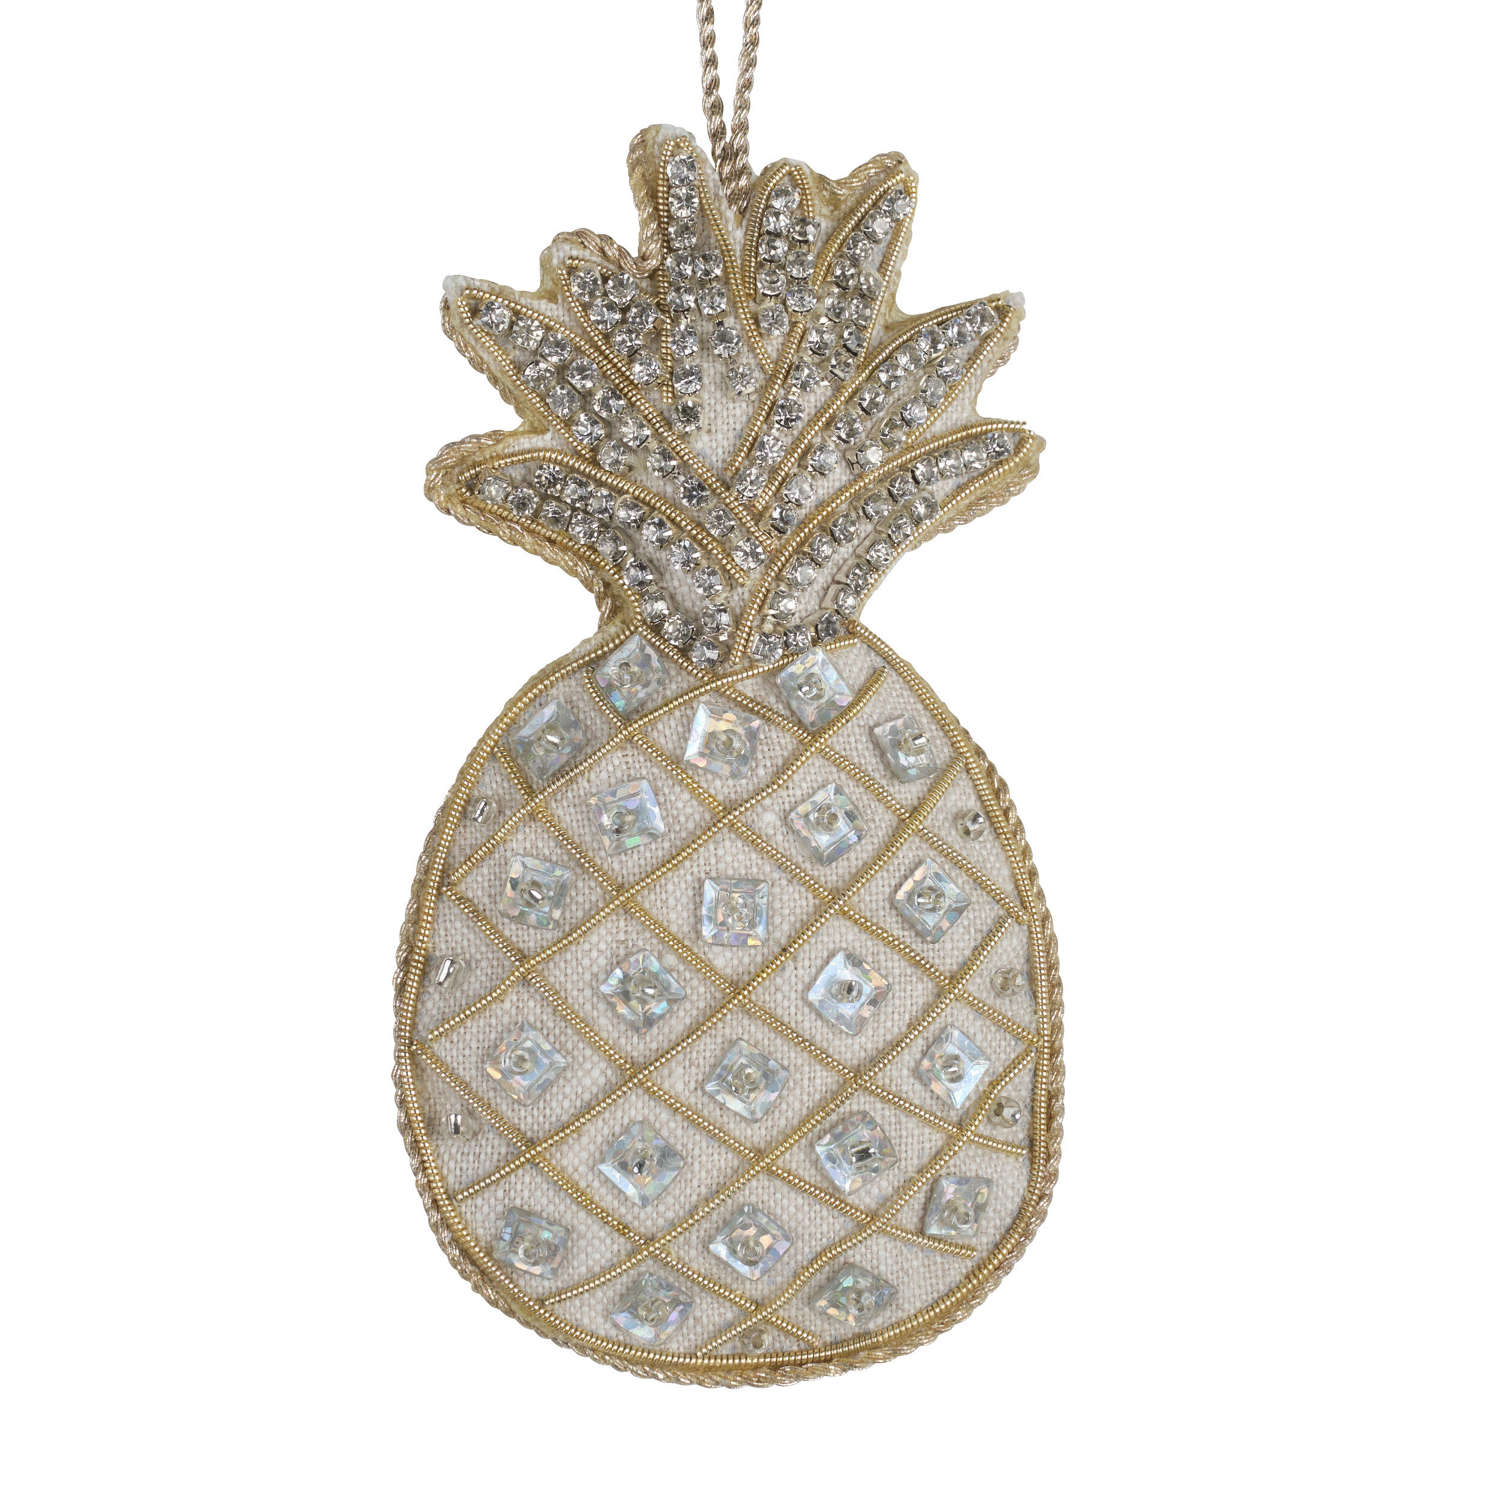 Irish Linen Pineapple Hanging Decoration by Katie Larmour.